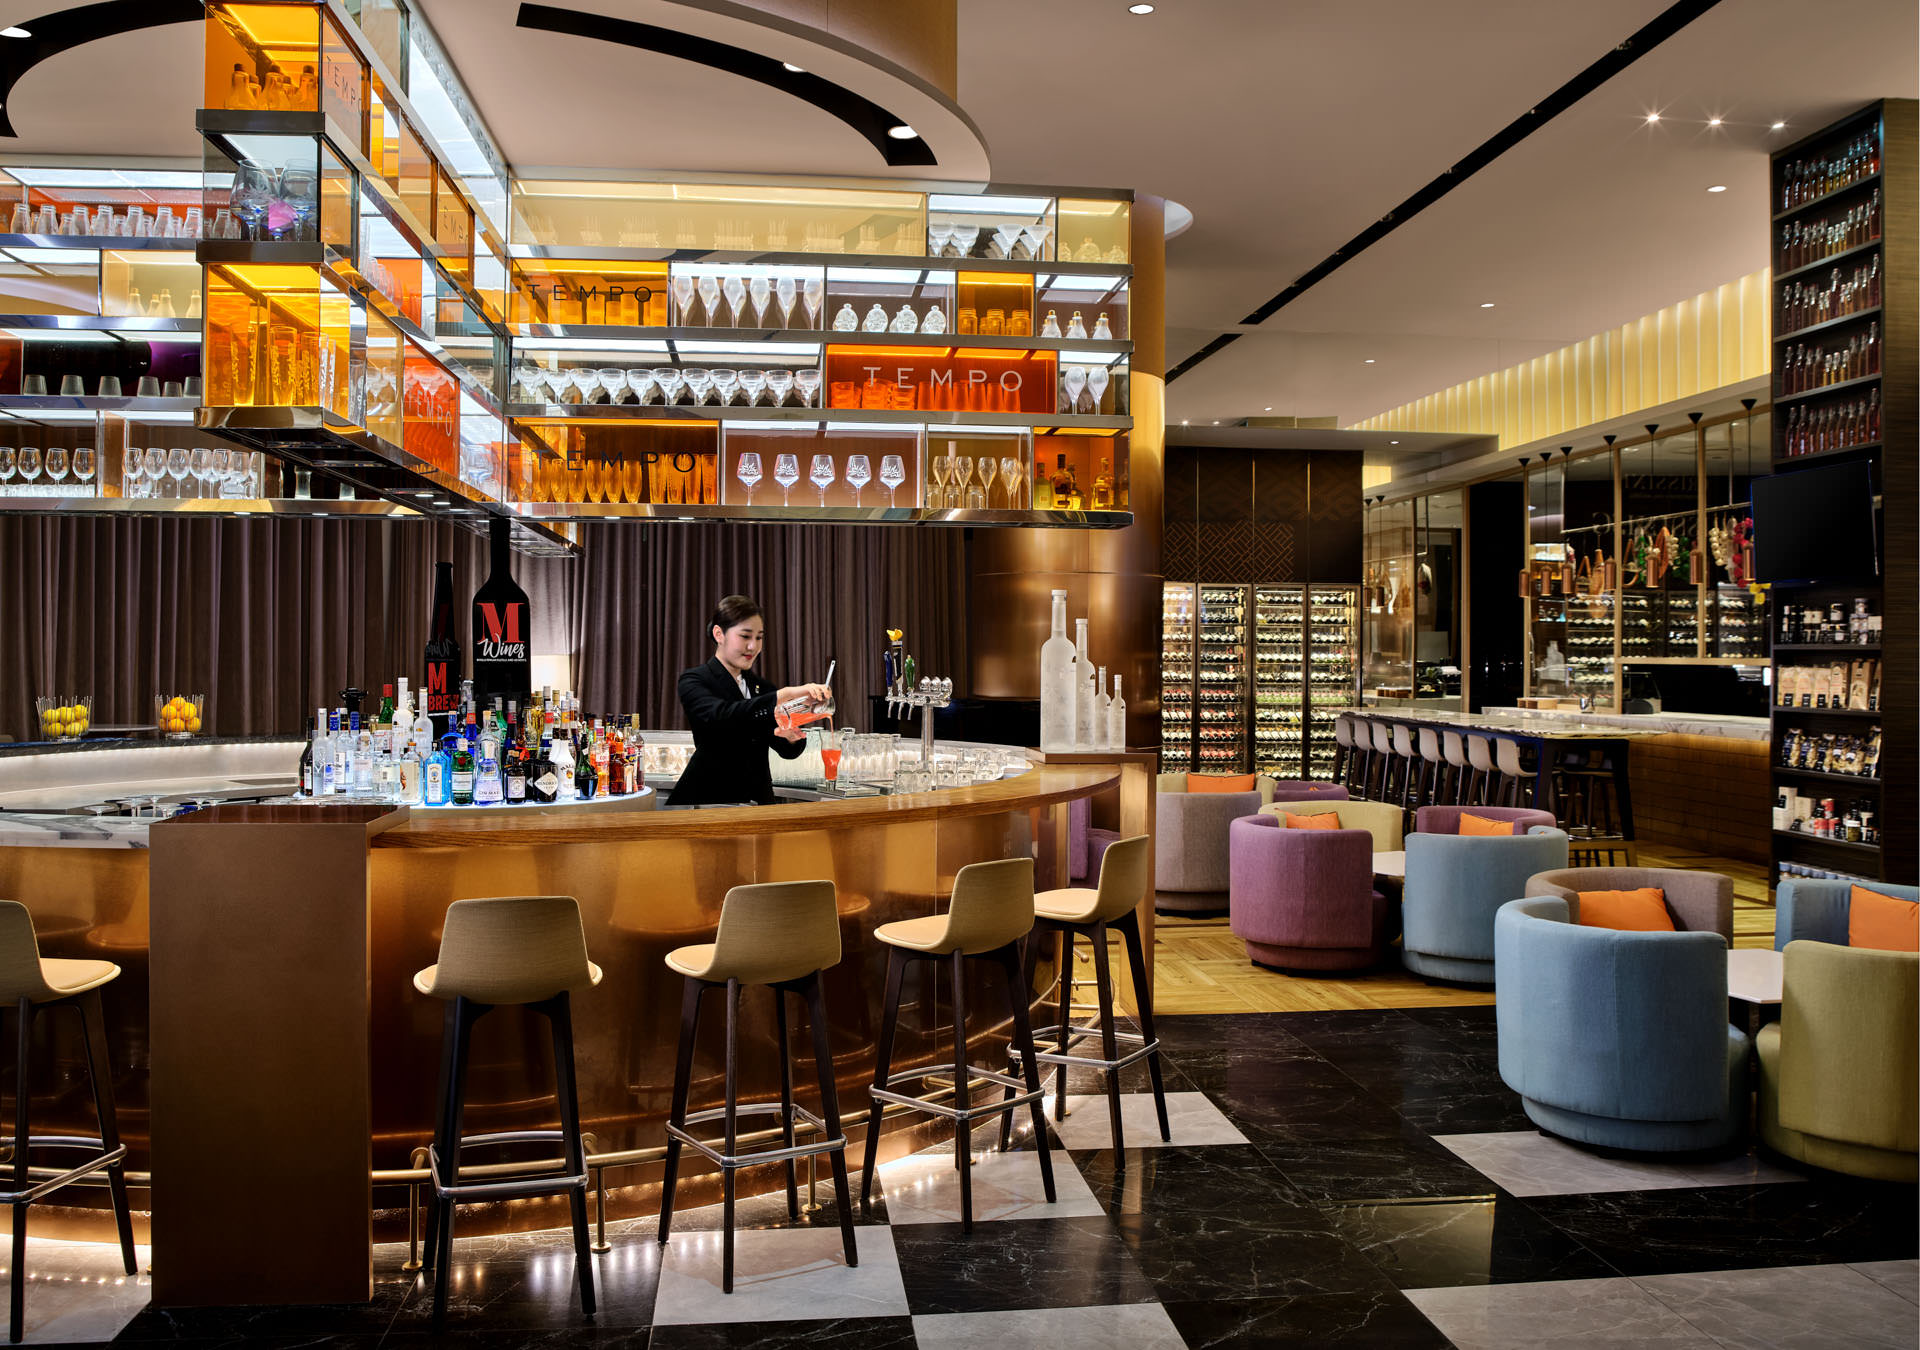 interior photography of tempo restaurant with colourful glasses on shelves and lounge area with sofas. Staff is pouring drink at grand copthorne waterfront hotel in singapore